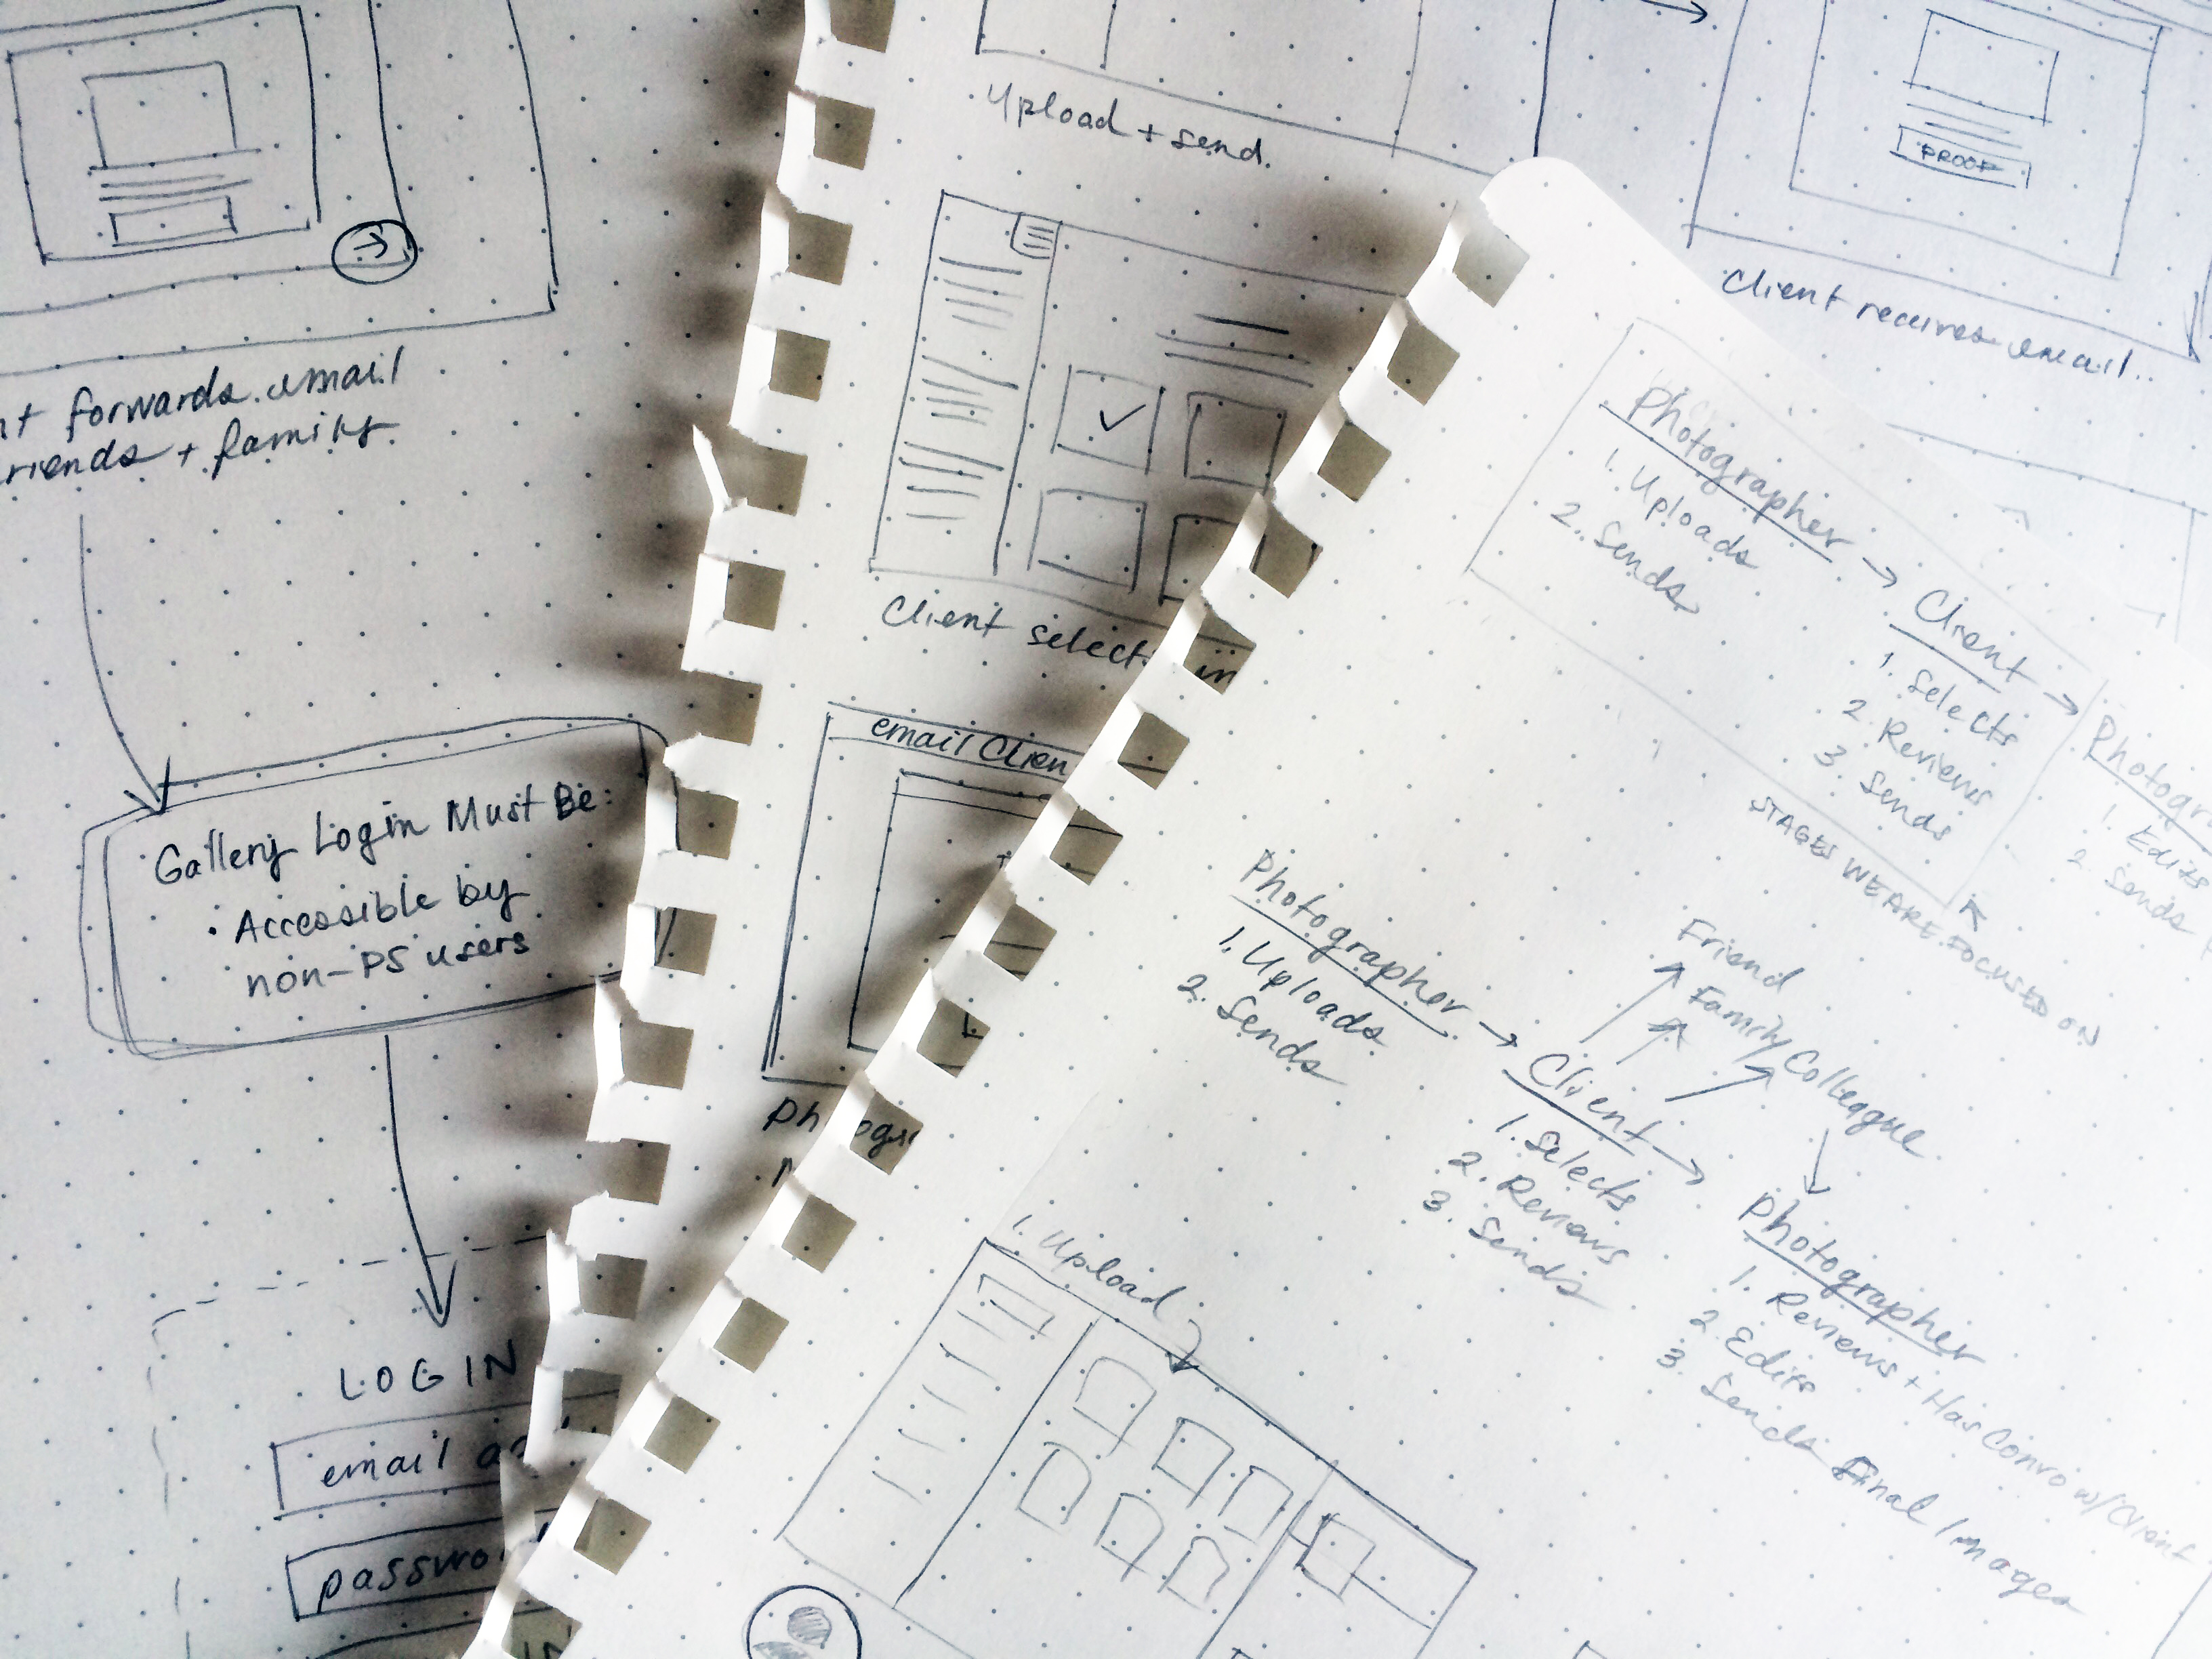 Paper sketches of the client proofing tool. The sketches include the basic building blocks for website wireframes: circles, squares, arrows and text.